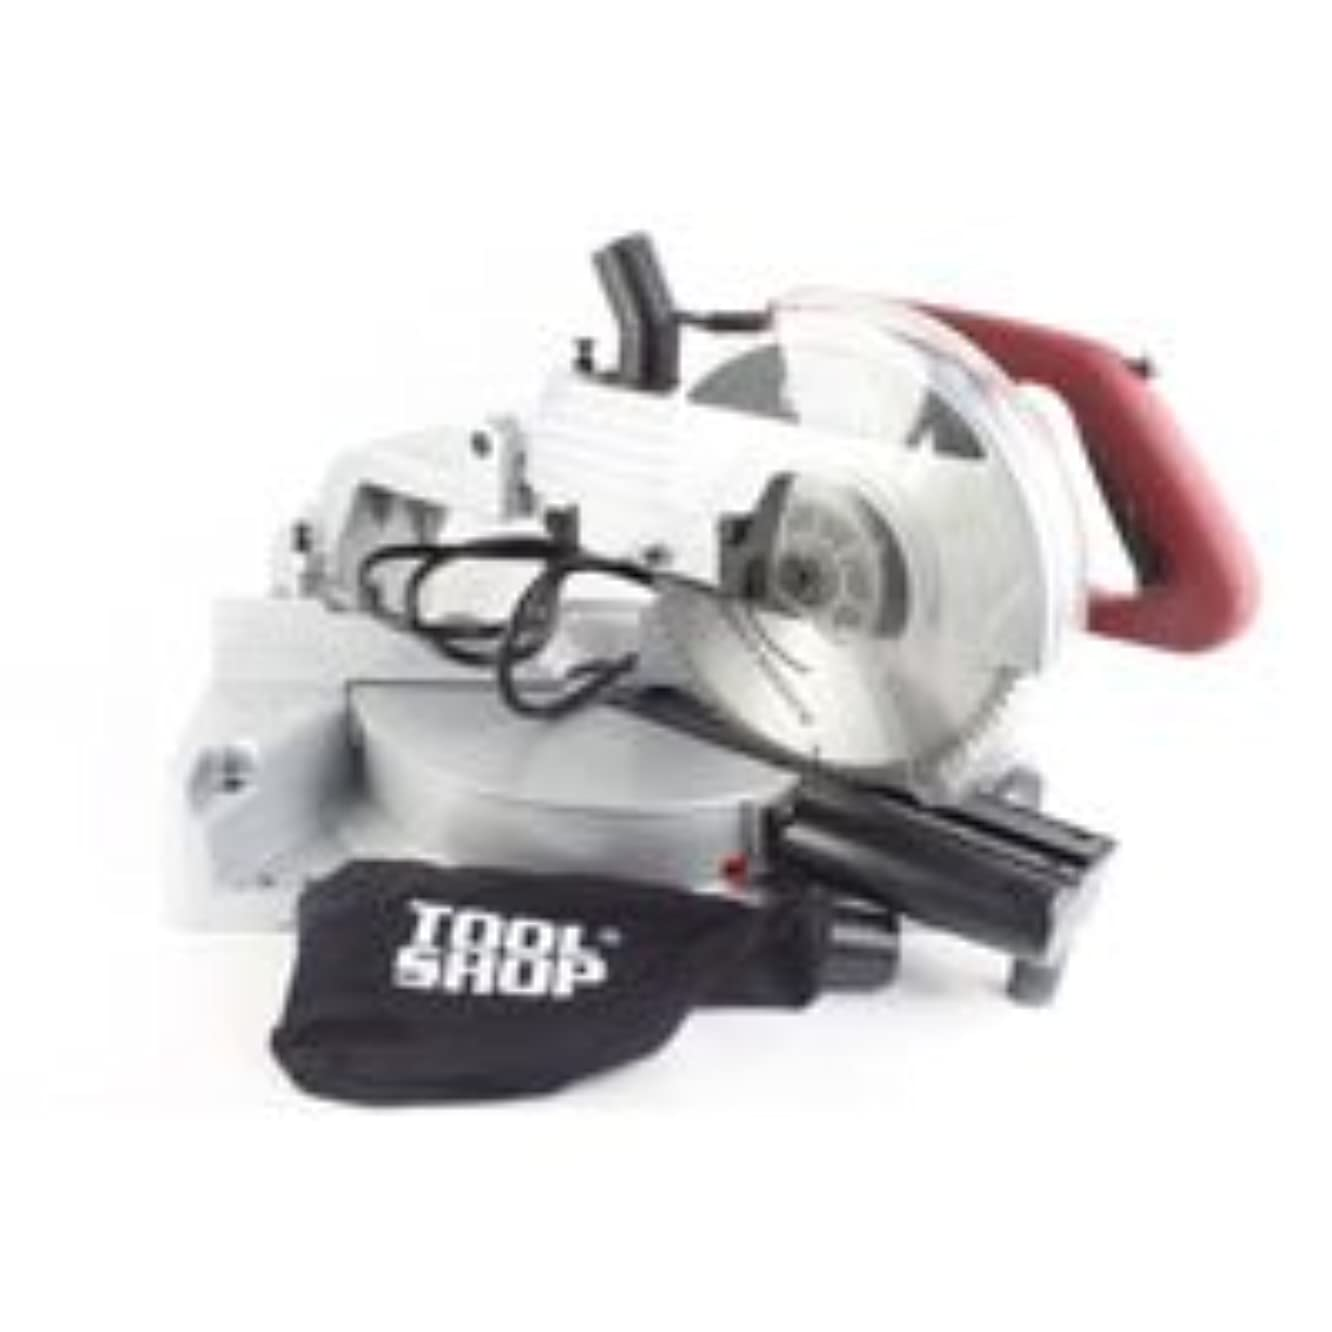 10 Inch Miter Saw Sliding Compound Table Saw Electronic Blade Brake 4800RPM